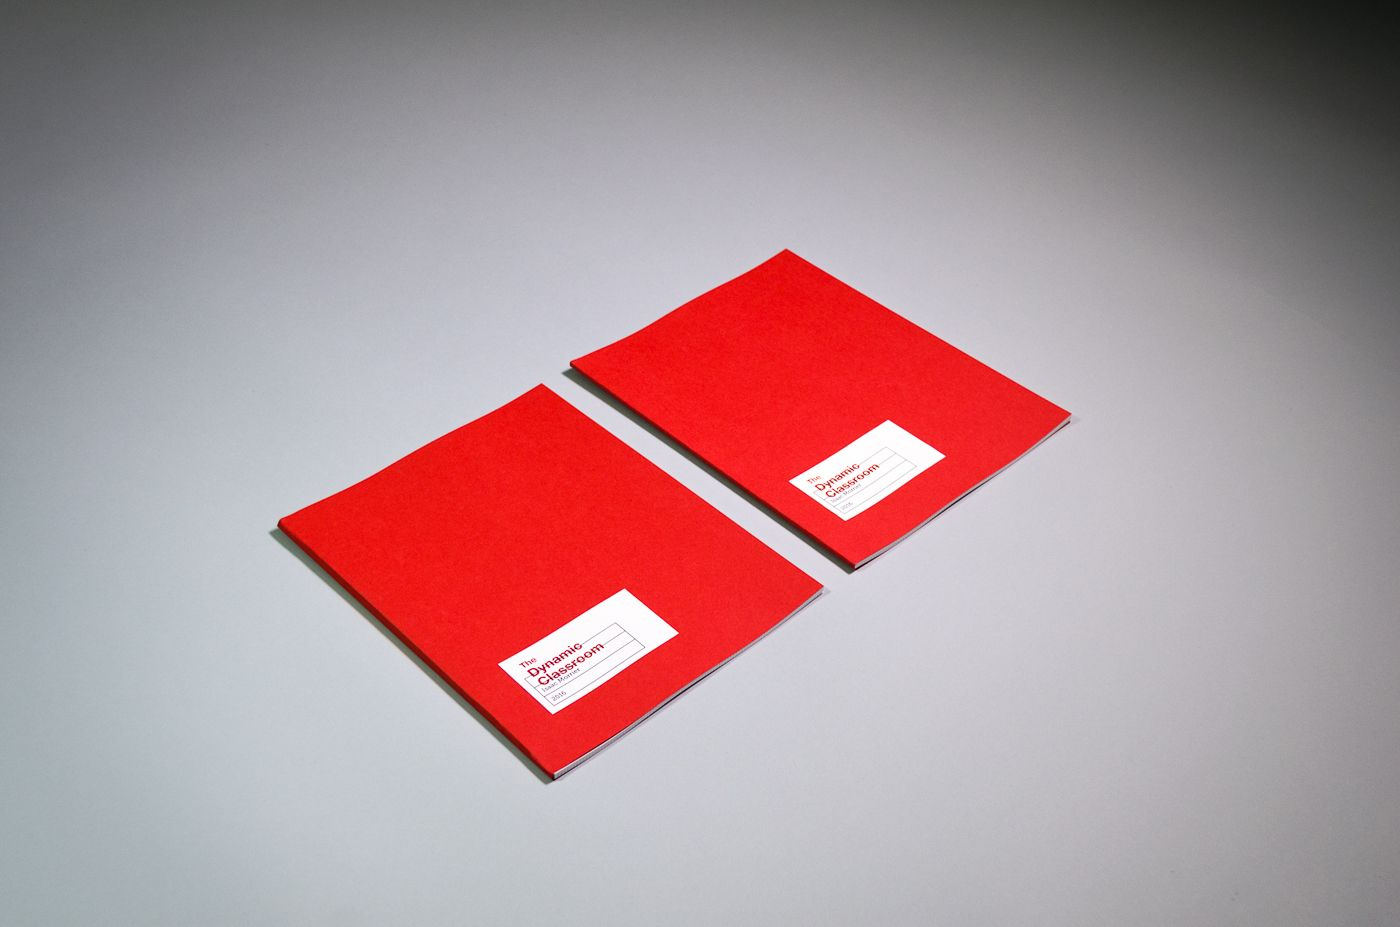 """Two copies of the book. It measures about 8 inches wide by 10.5 inches tall. The cover is bright red matte paper. A small white label is adhered towards the bottom left corner. On it is printed a small black table of information, with """"The Dynamic Classroom"""" overprinted in large red letters."""